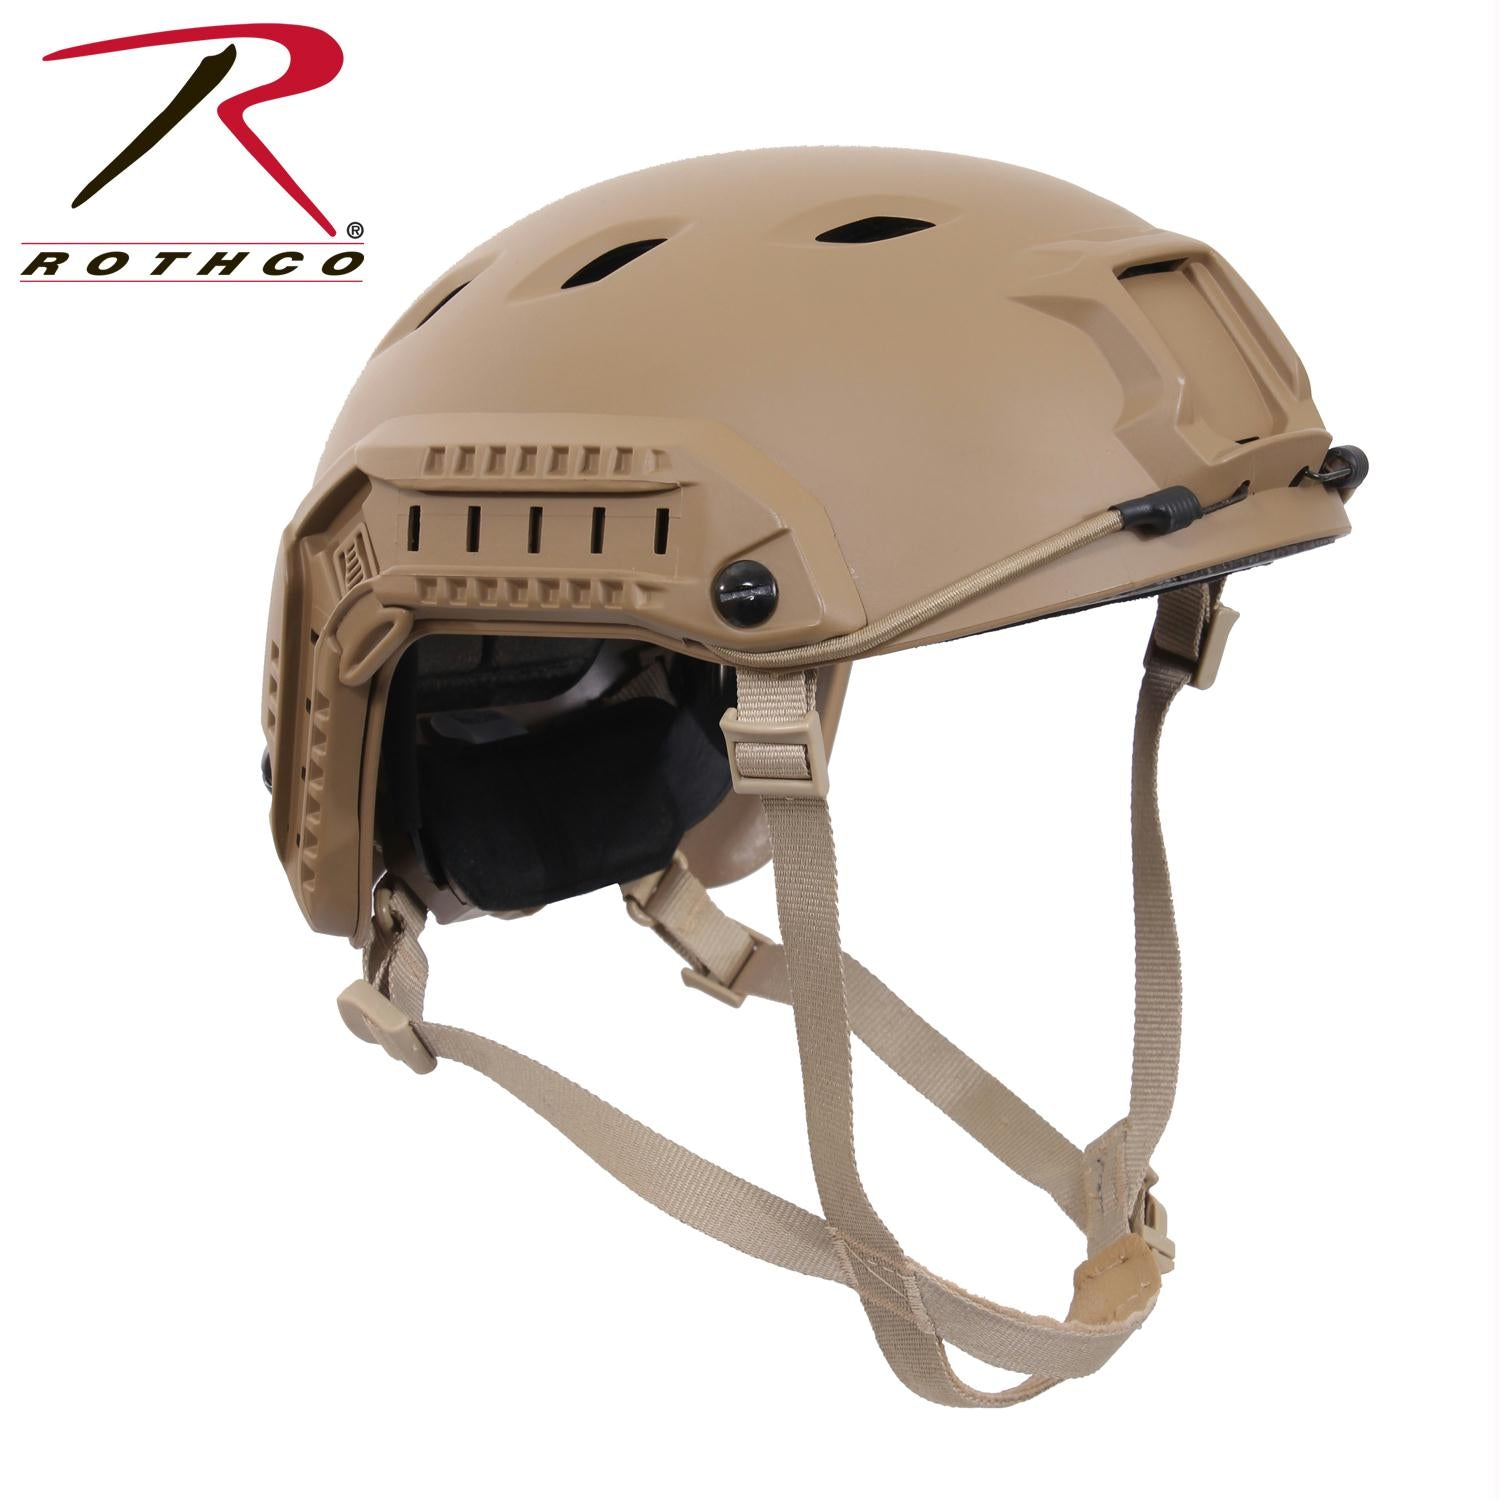 Rothco Advanced Tactical Adjustable Airsoft Helmet - Coyote Brown